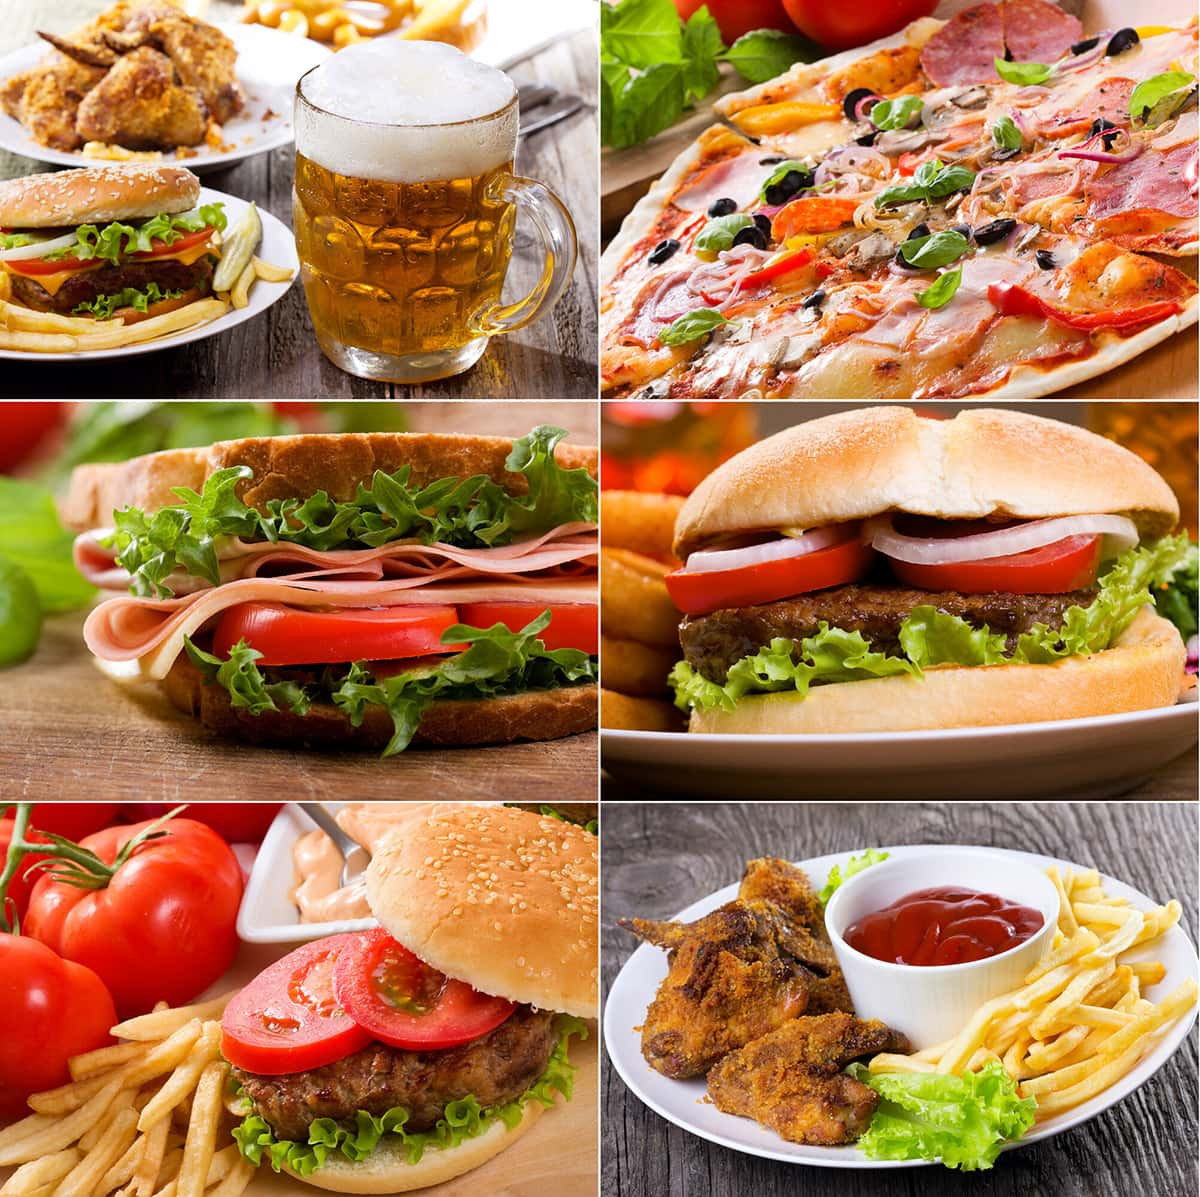 food addiction causes weight gain, showing lots of junk foods